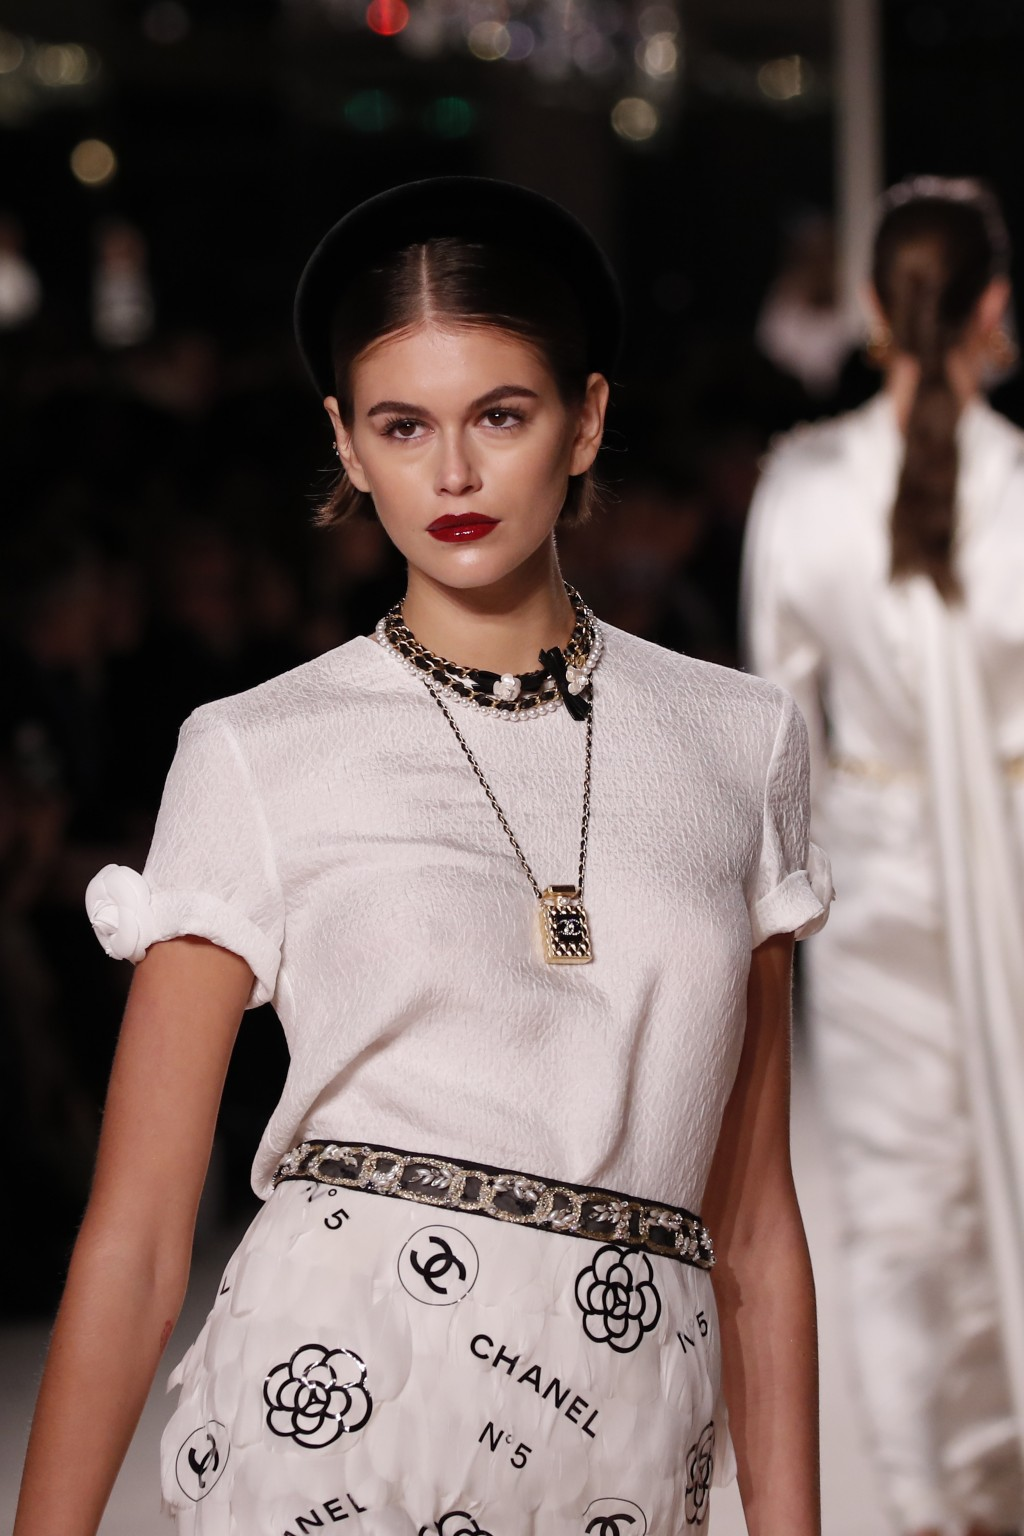 Model Kaia Gerber wears a creation for Chanel's Metiers d'Art collection presented at the Grand Palais in Paris, Wednesday, Dec.4, 2019. (AP Photo/Fra...